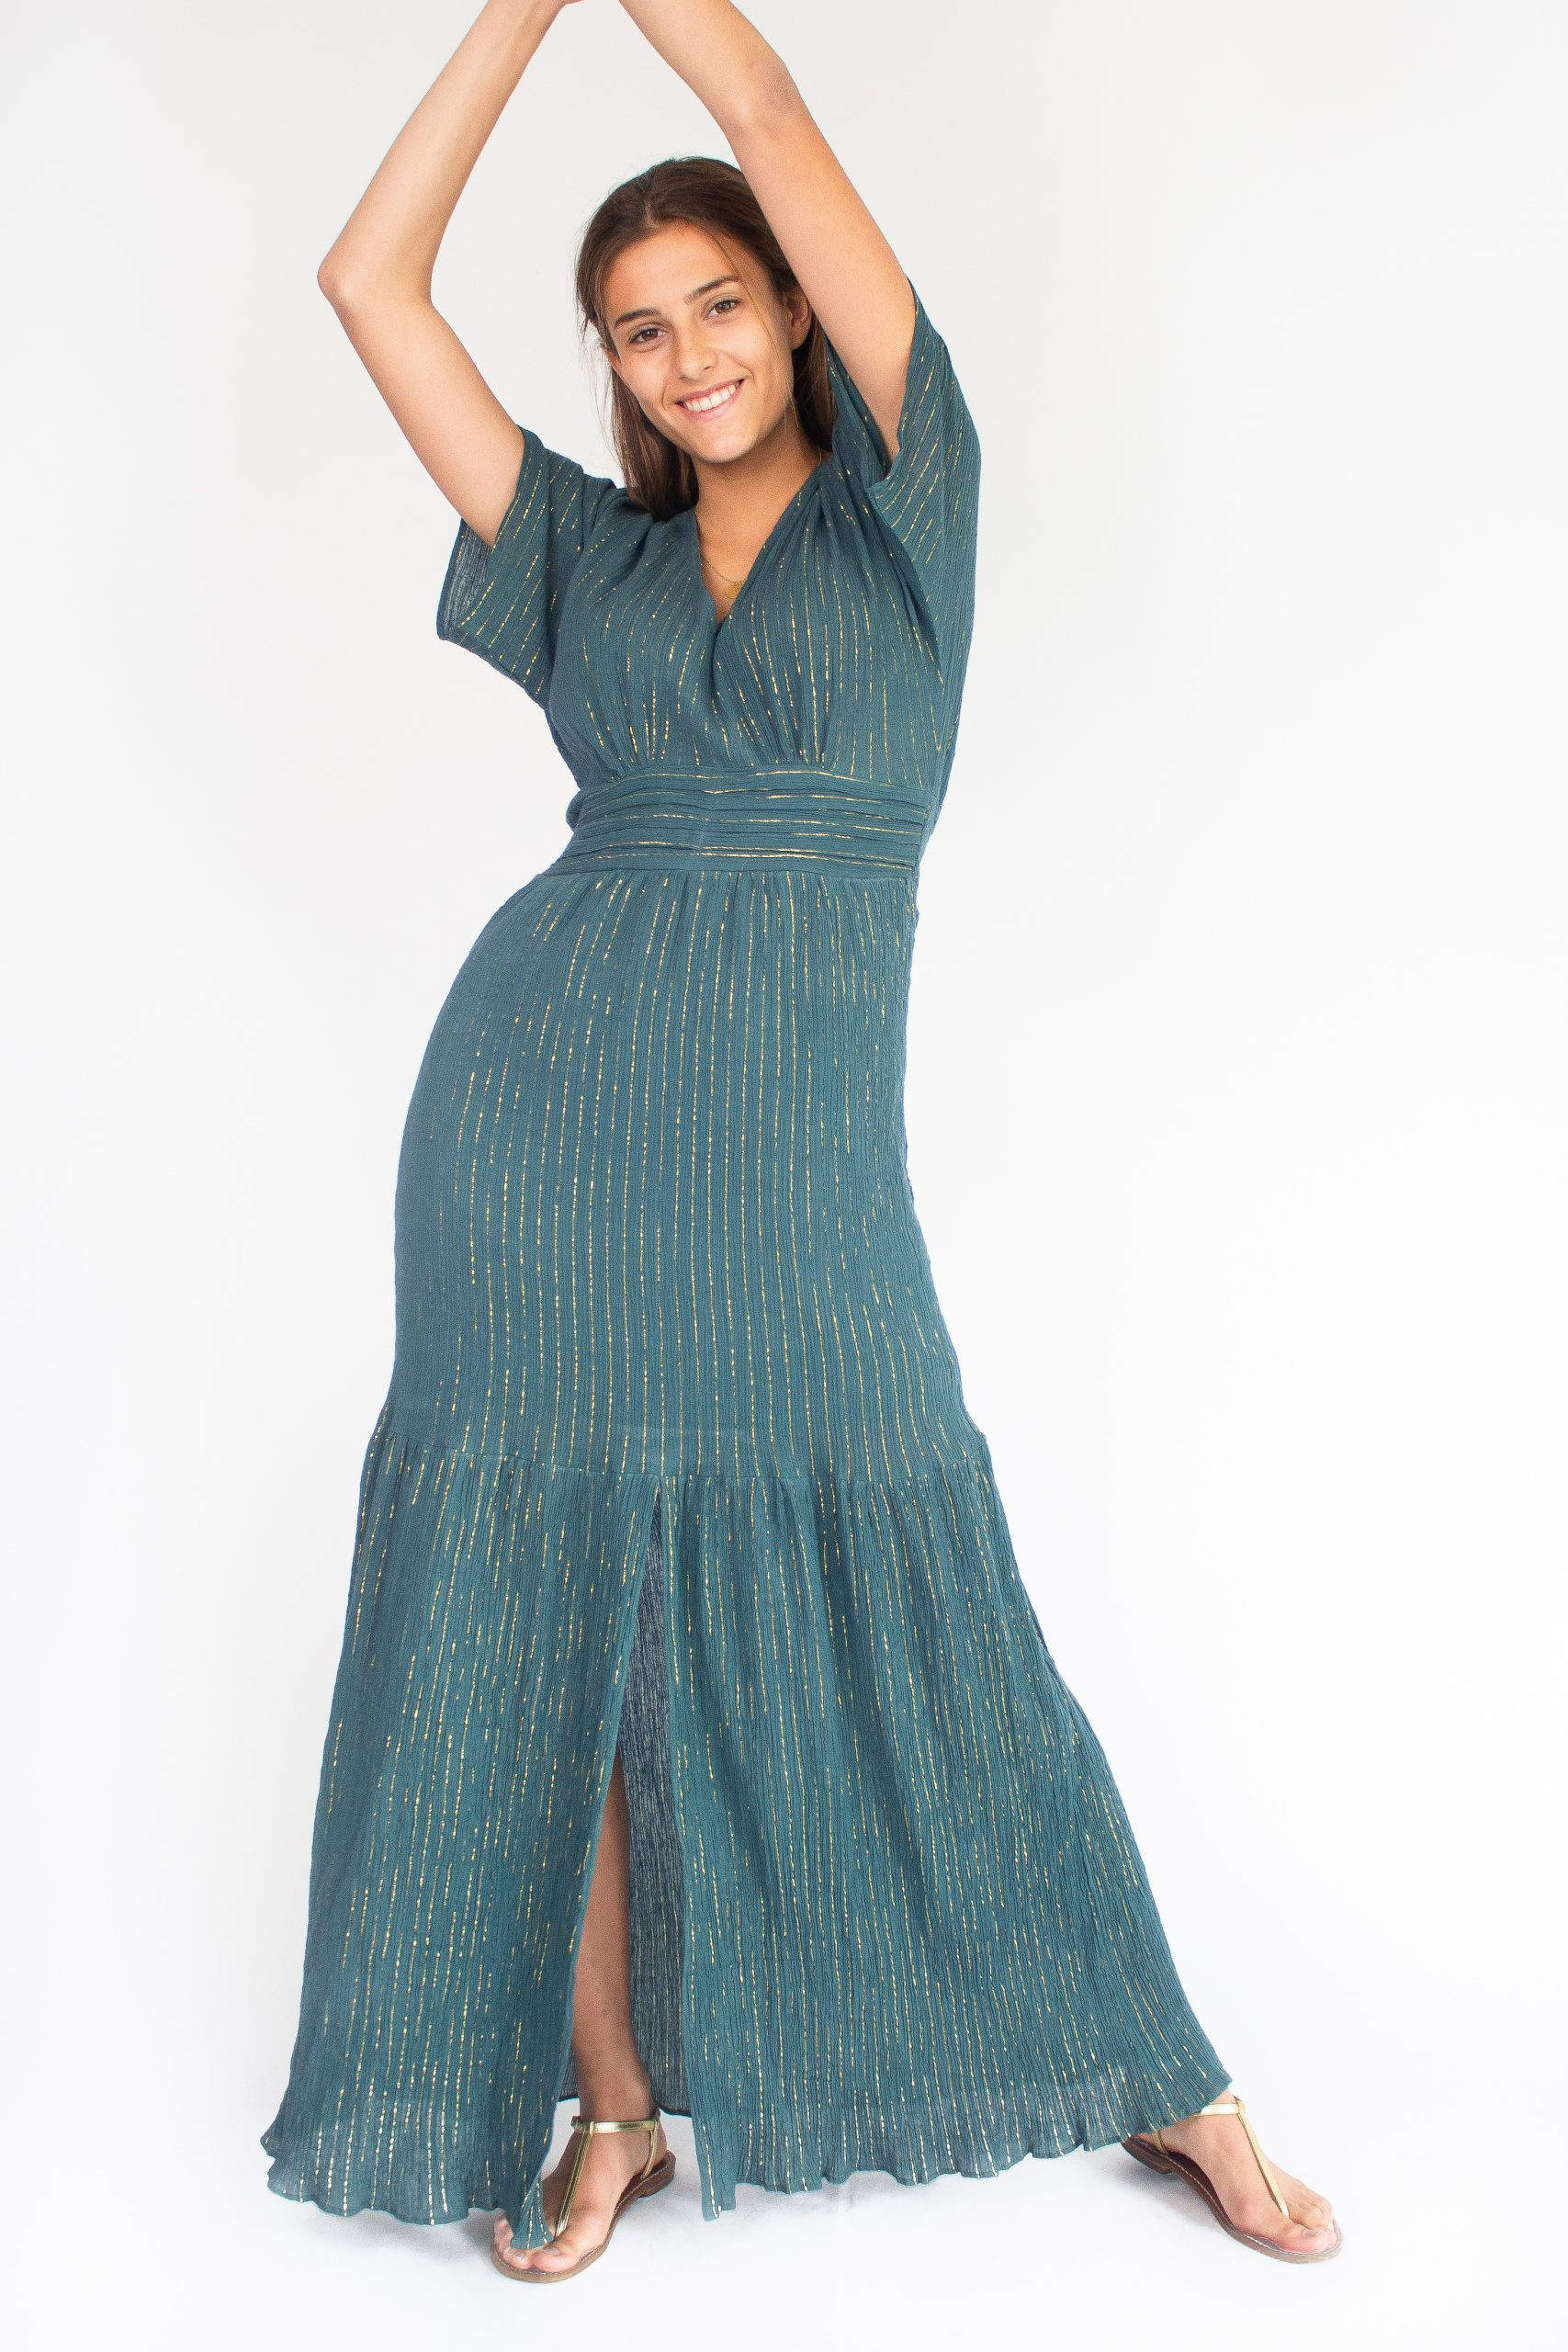 forest green long dress for women with gold stripes fashion capsule by juliette